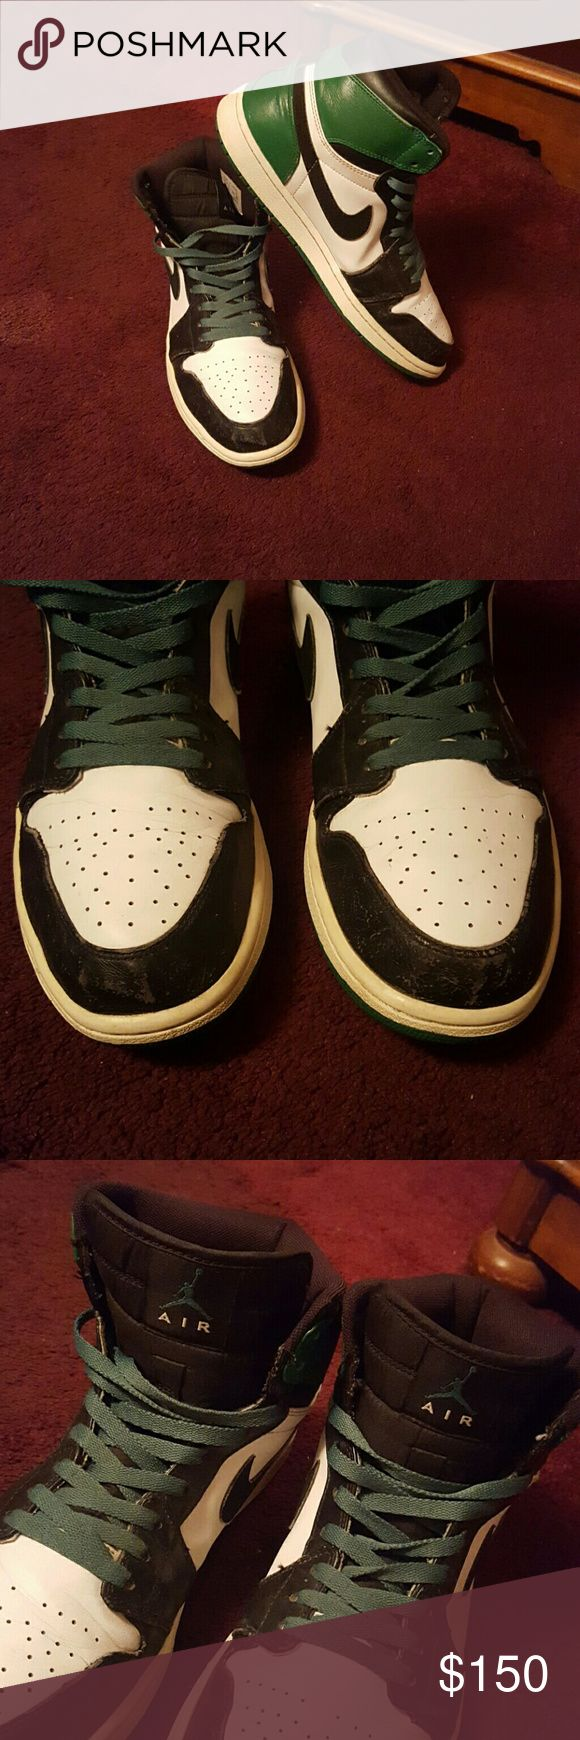 Retro Jordan's Classic 1s Celtic Playoff Edition Rare Jordan's Classic 1s Celtic Playoff Edition $350 shoes new!! Little wear and tear on the bottom of the shoes because some of the paint color came off but when u wear them u won't be able to see them, if you are interested in these shoes and would like to see the bottoms i will put up another listing of them with extra pictures. Only allowed 4 pictures for an item so i wasn't able to show the picture of the bottoms :( so just message me and…